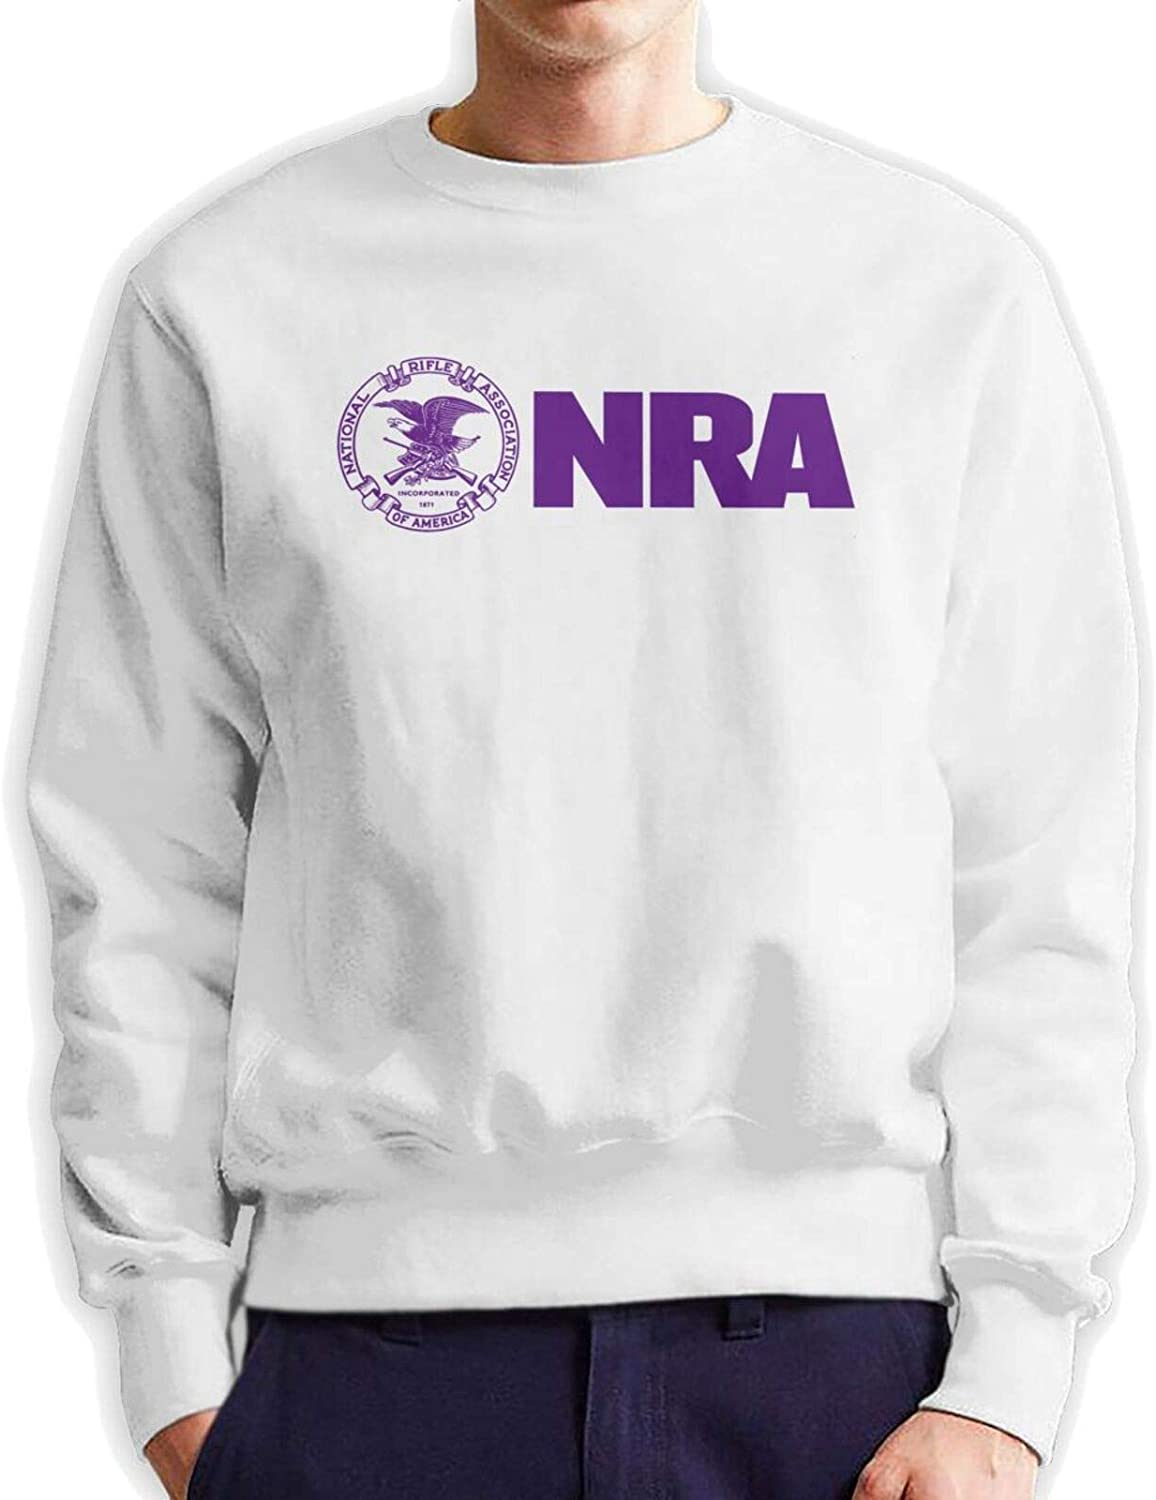 Nra Instructor excellence shipfree Man'S Crew Neck Sw Hooded Hoodie Authentic Cotton